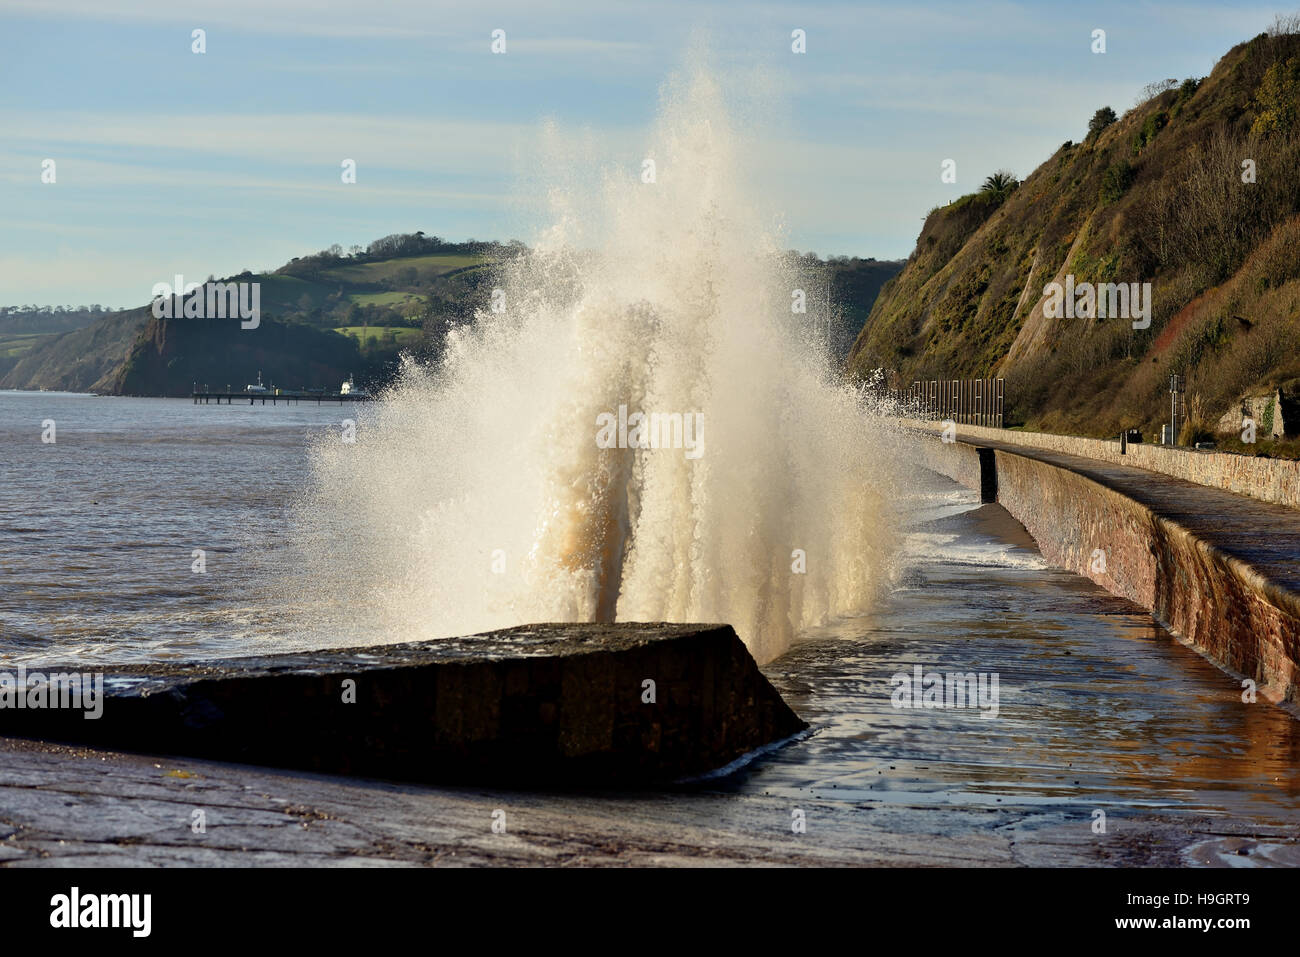 Rough seas during high tide along the Teignmouth sea wall at Sprey Point. Stock Photo